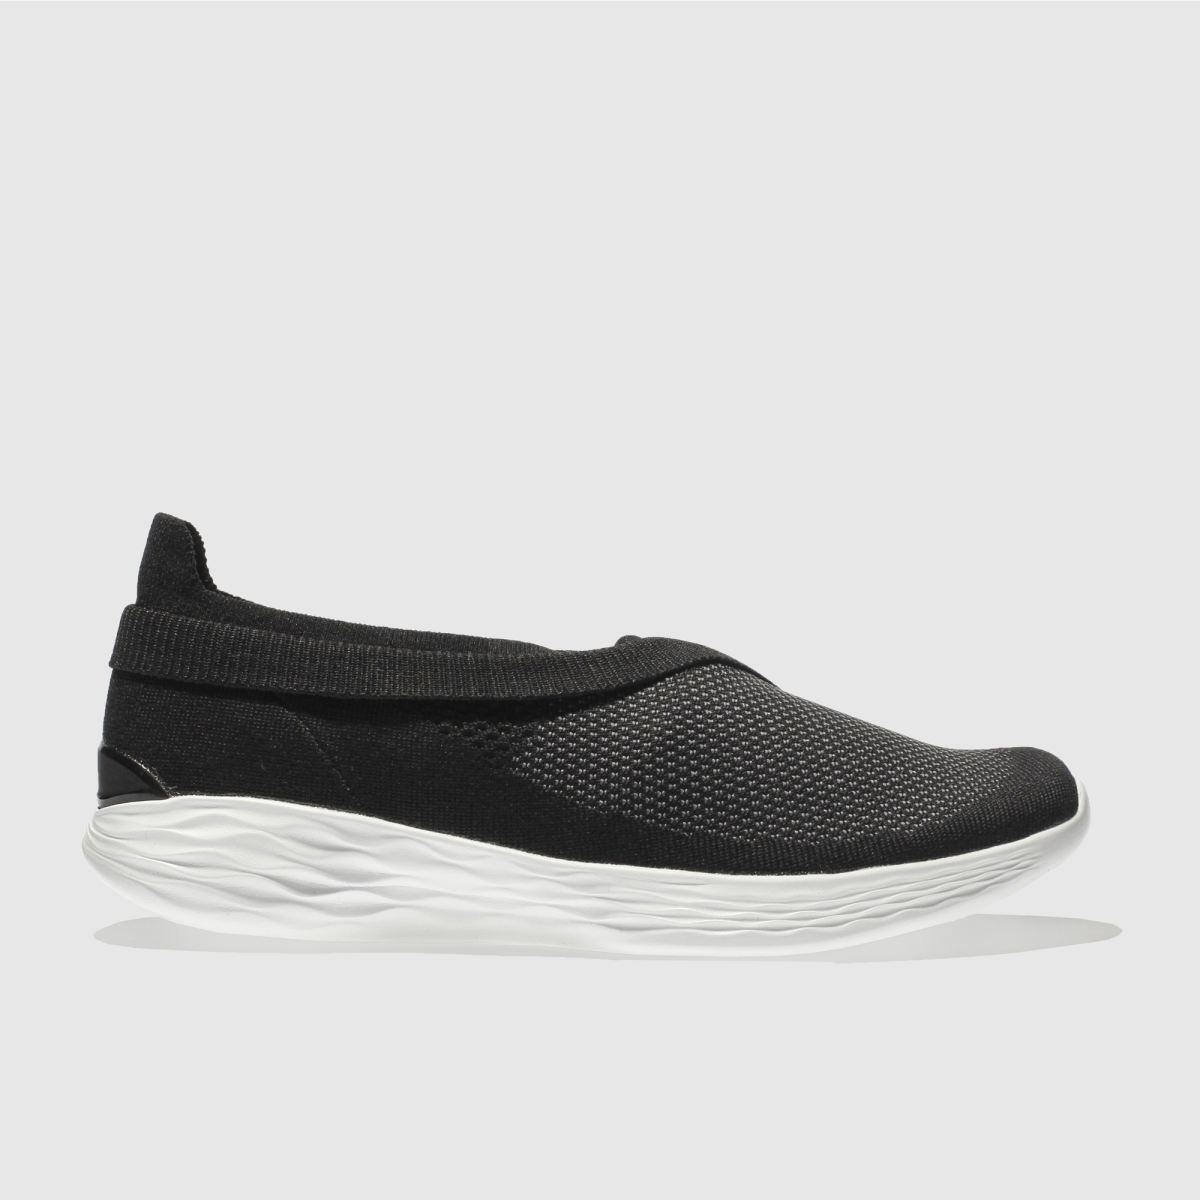 Skechers Black & White You Luxe Trainers